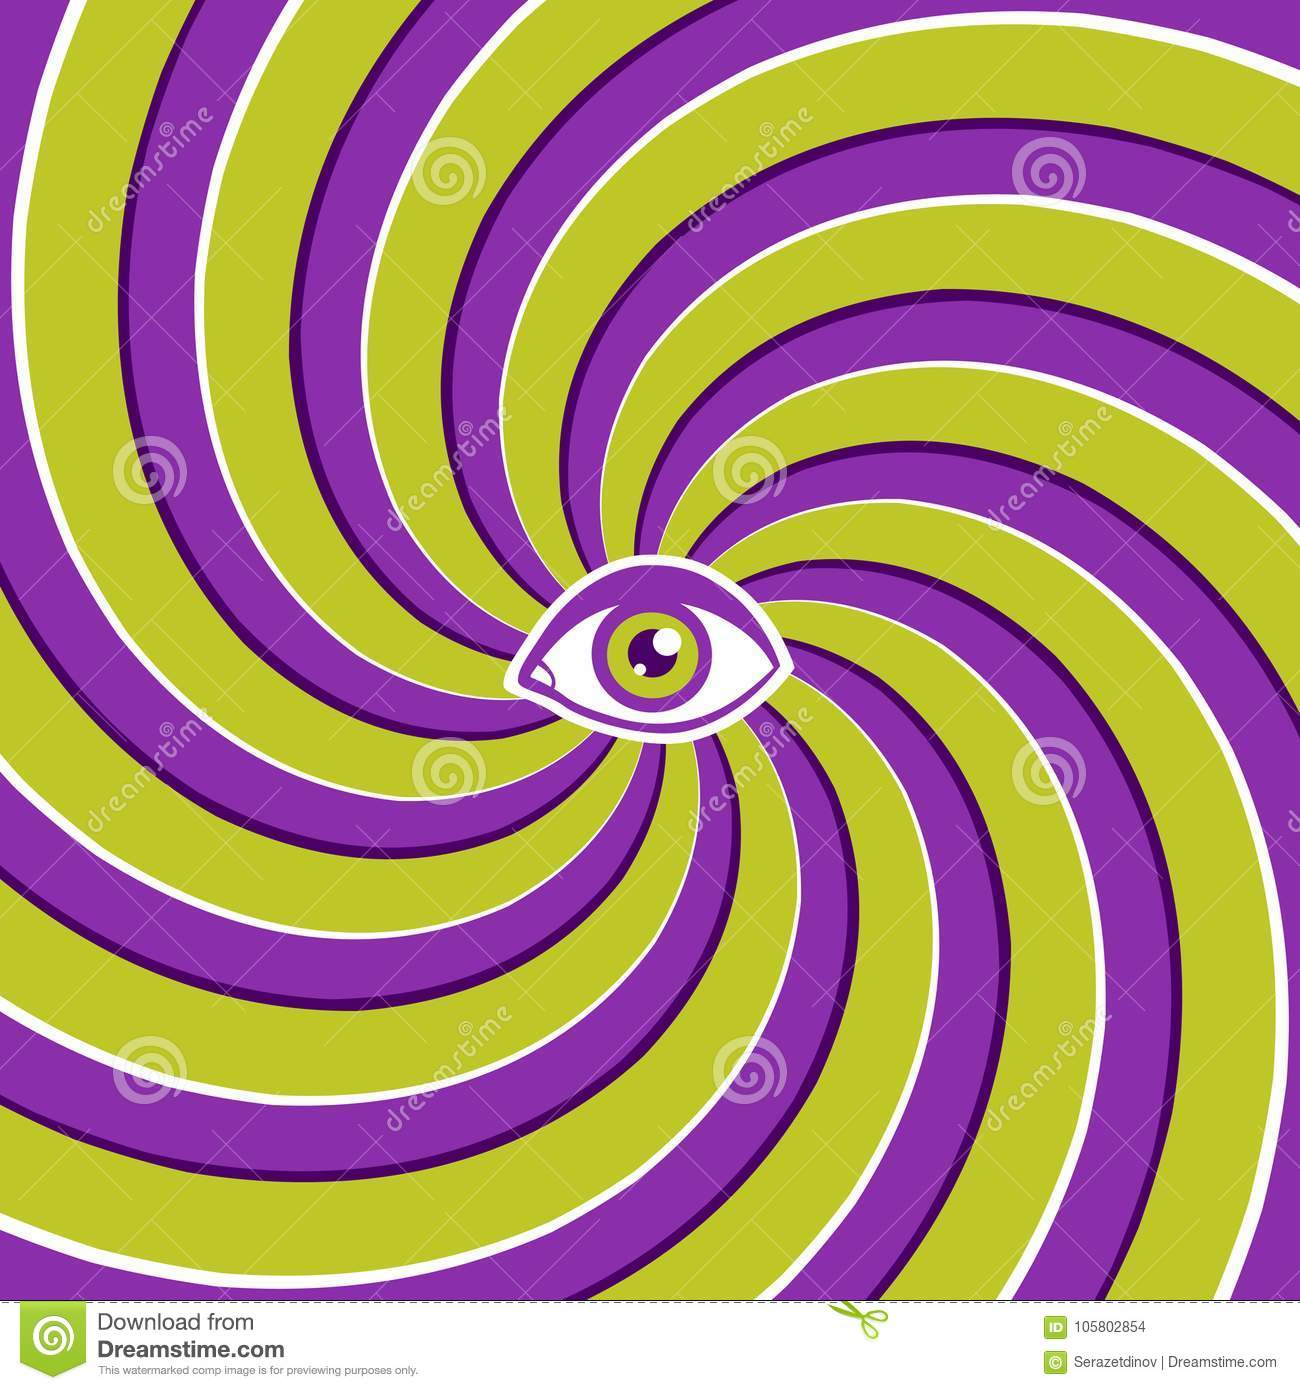 Optical illusion with eye